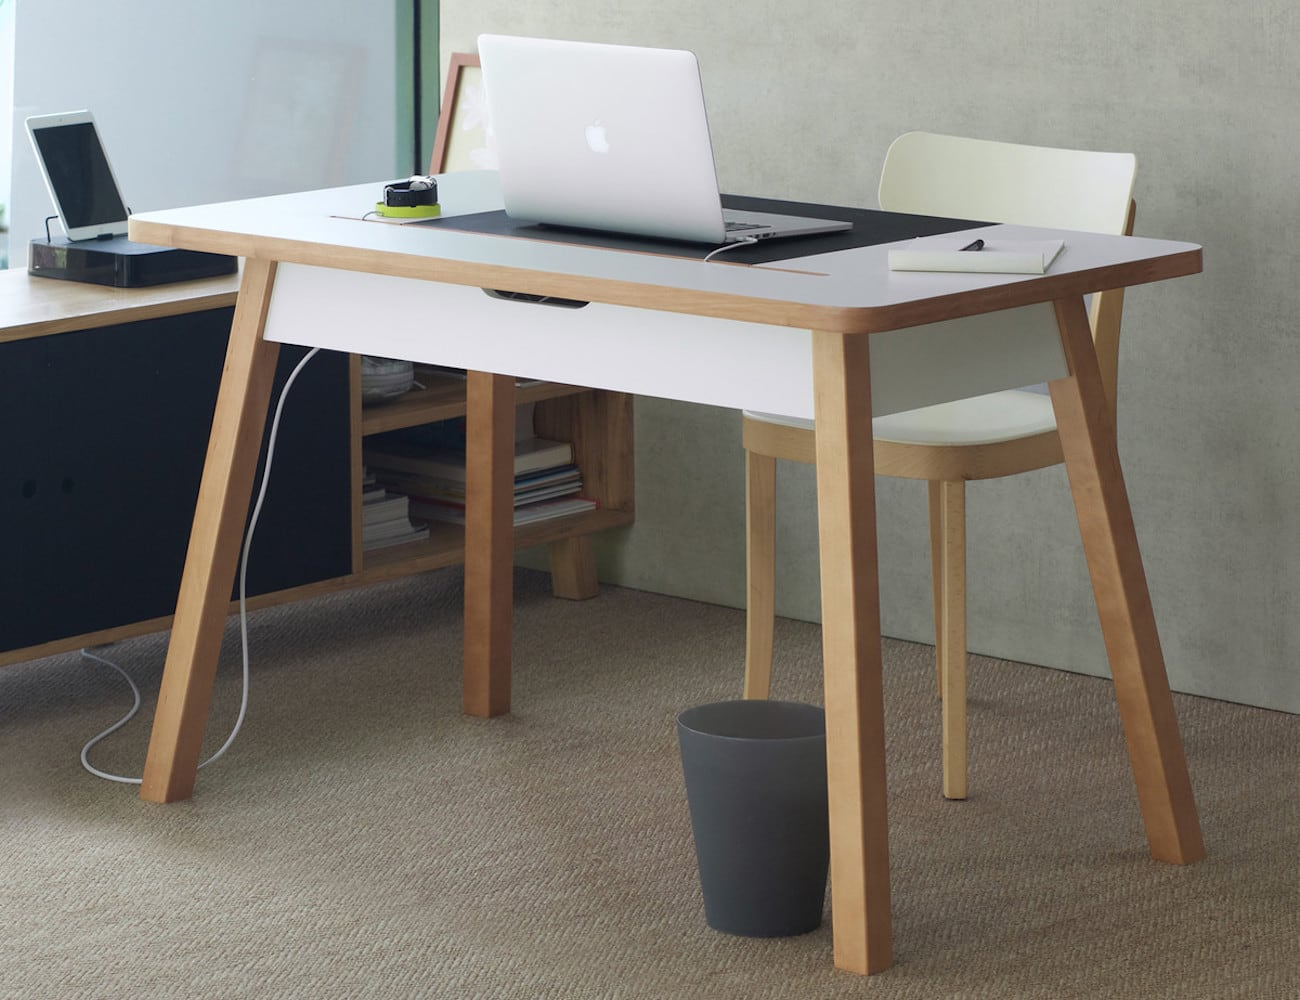 Bluelounge StudioDesk Advanced Office Desk keeps your workspace tidy